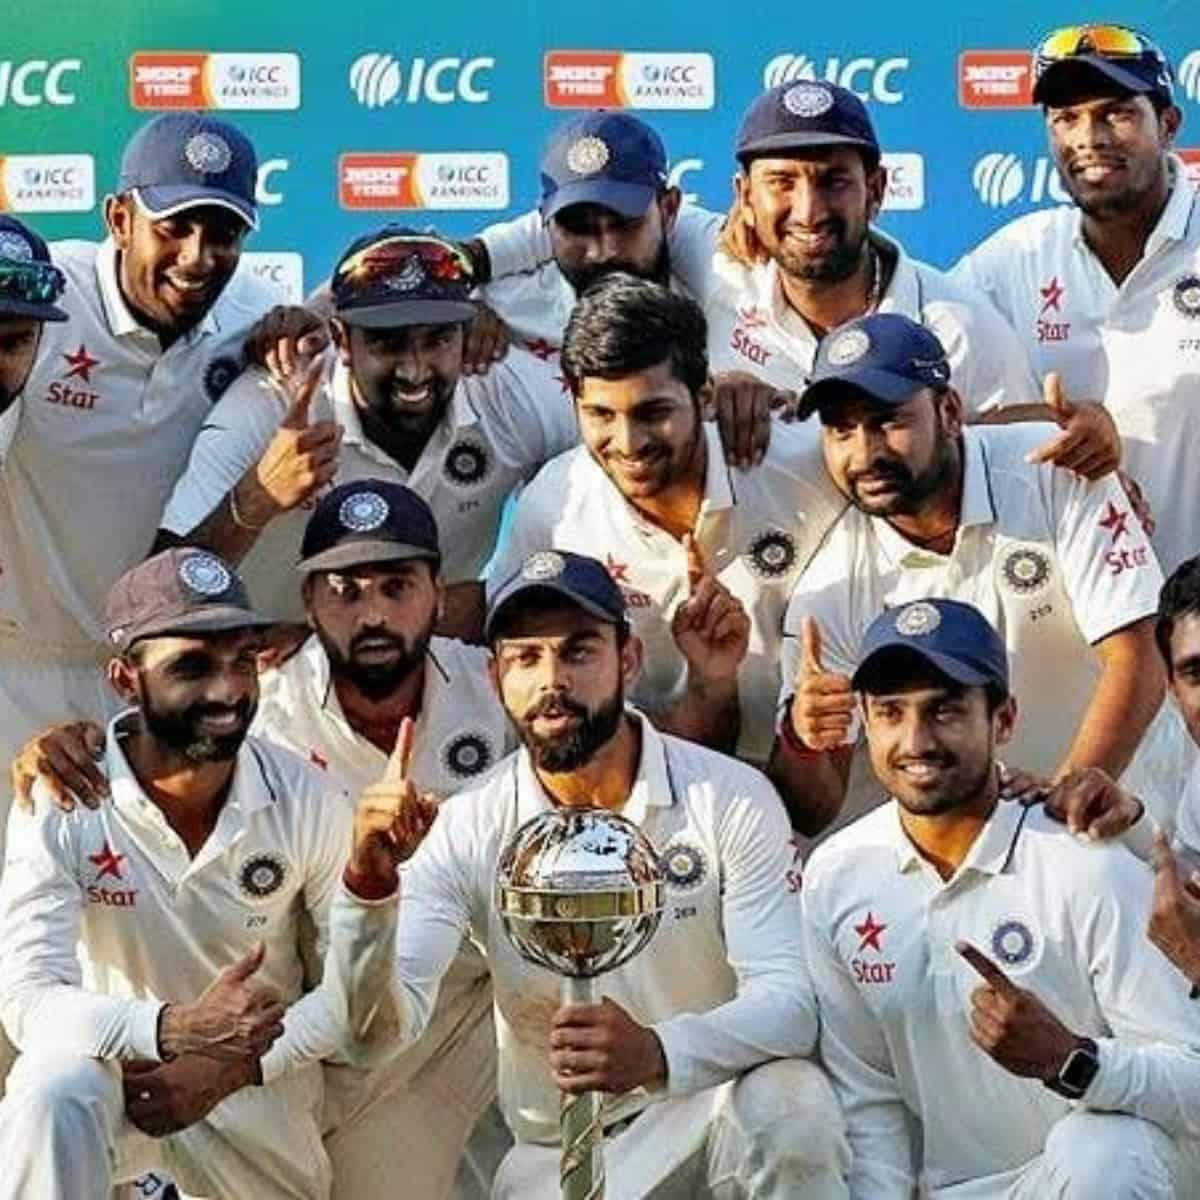 BCCI has launched an app to ensure the safety and practice of cricketers